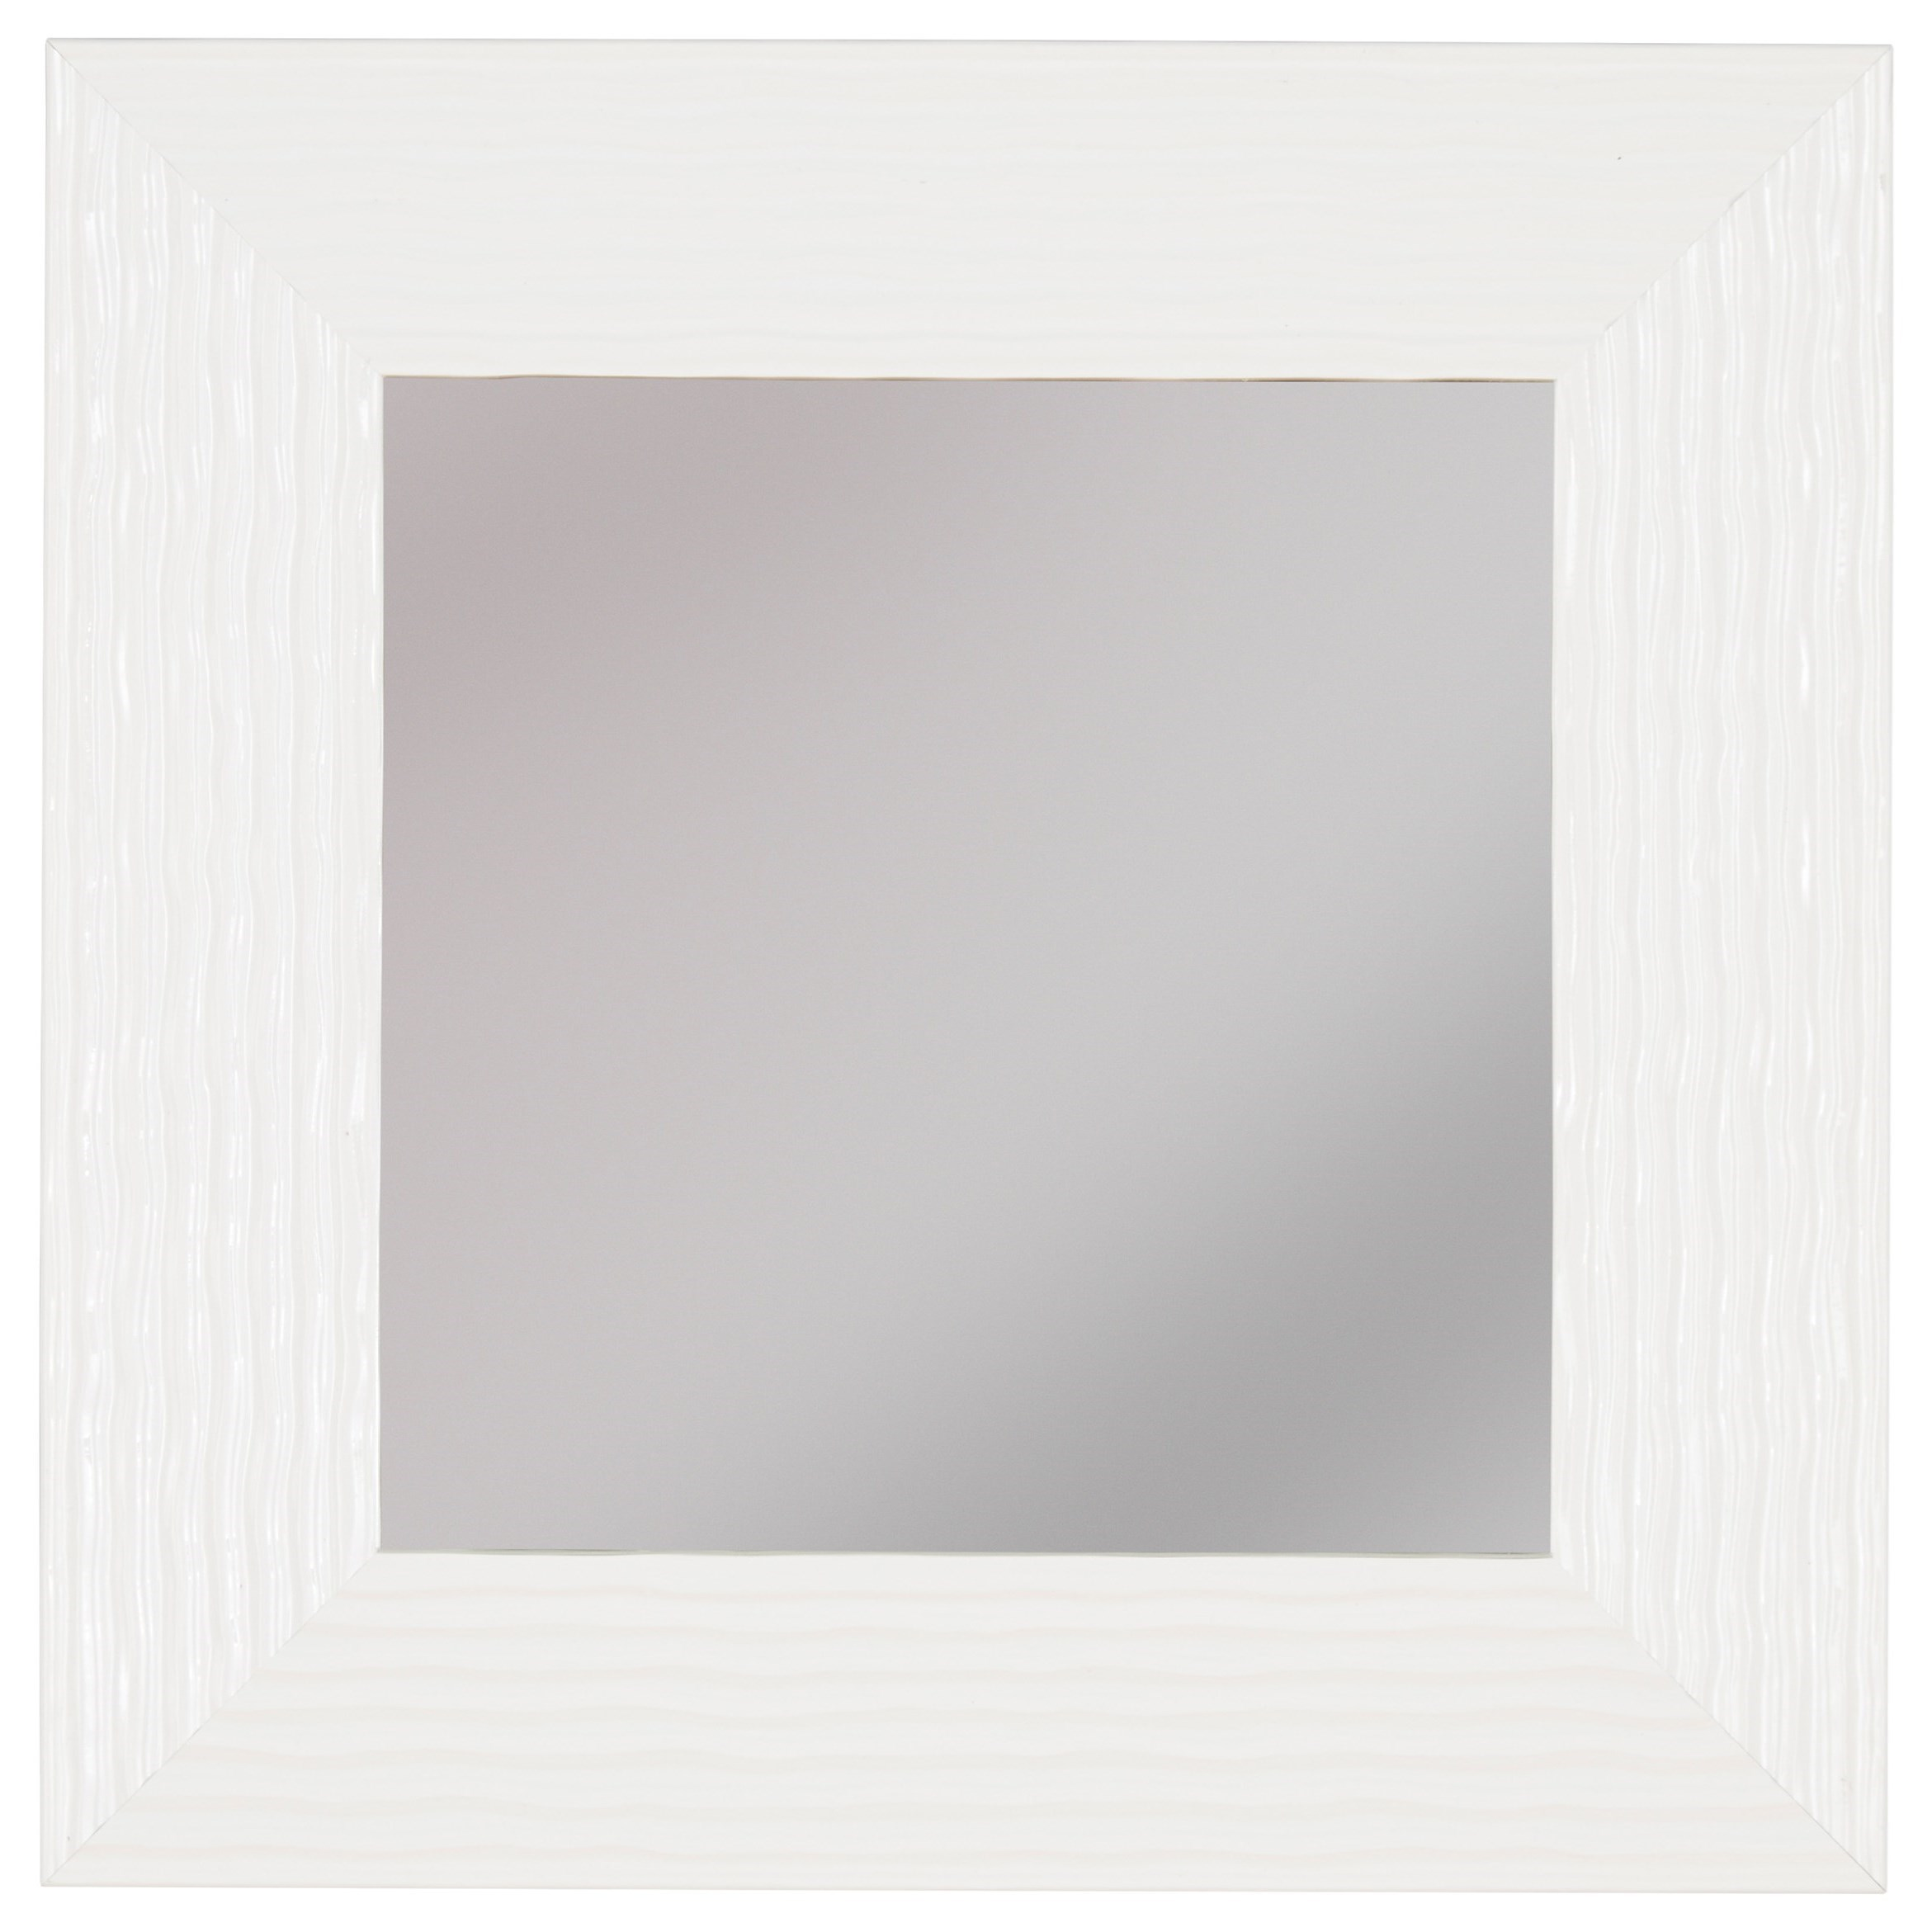 Signature Design by Ashley Furniture Accent Mirrors Odelyn White Wall Mirror - Item Number: A8010010